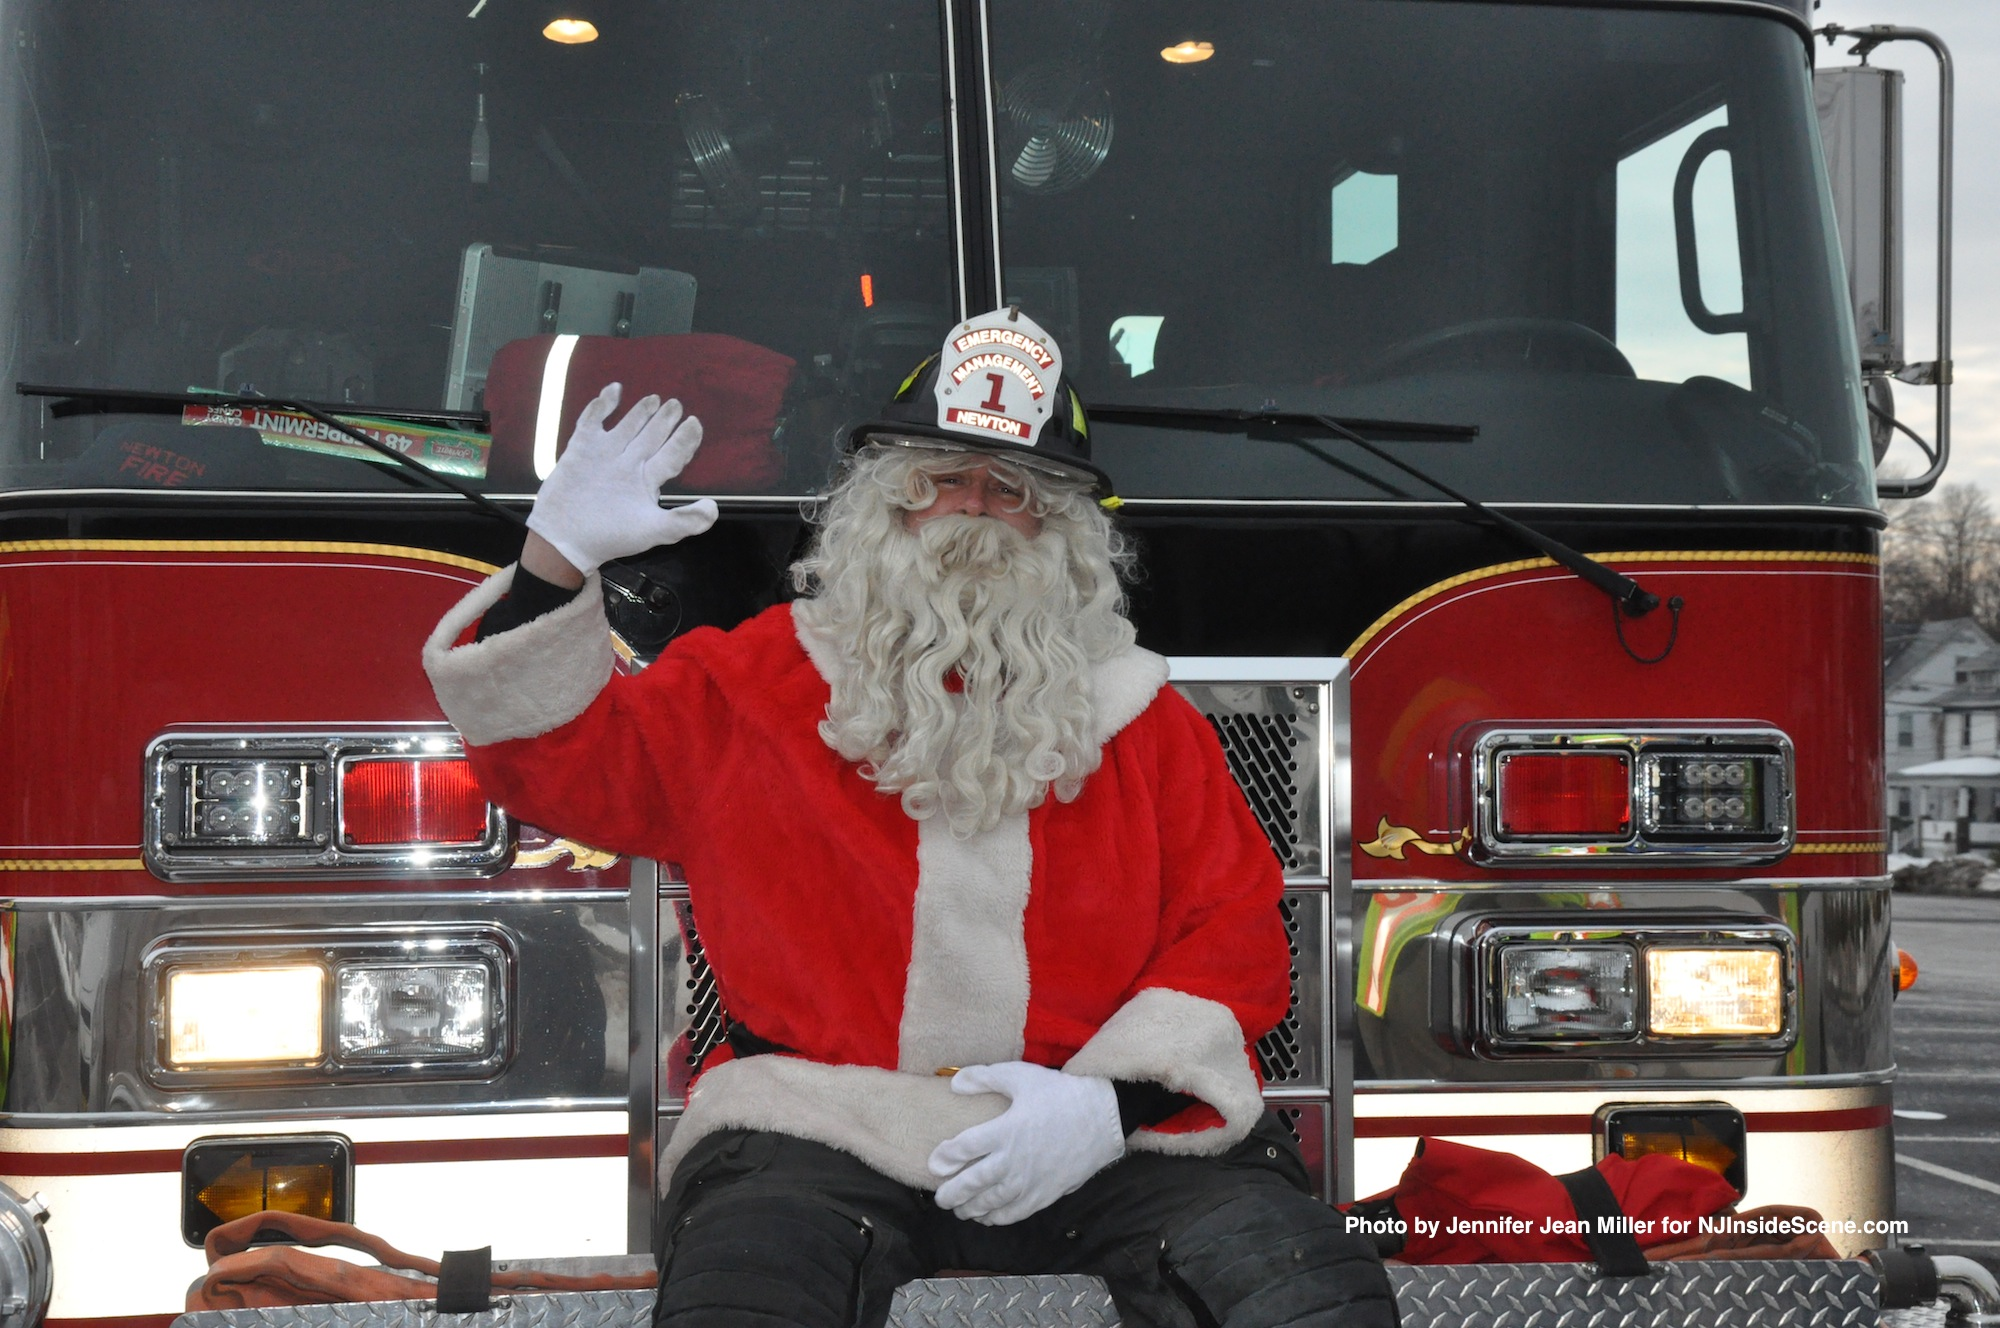 Santa smiles from the front of the fire engine.